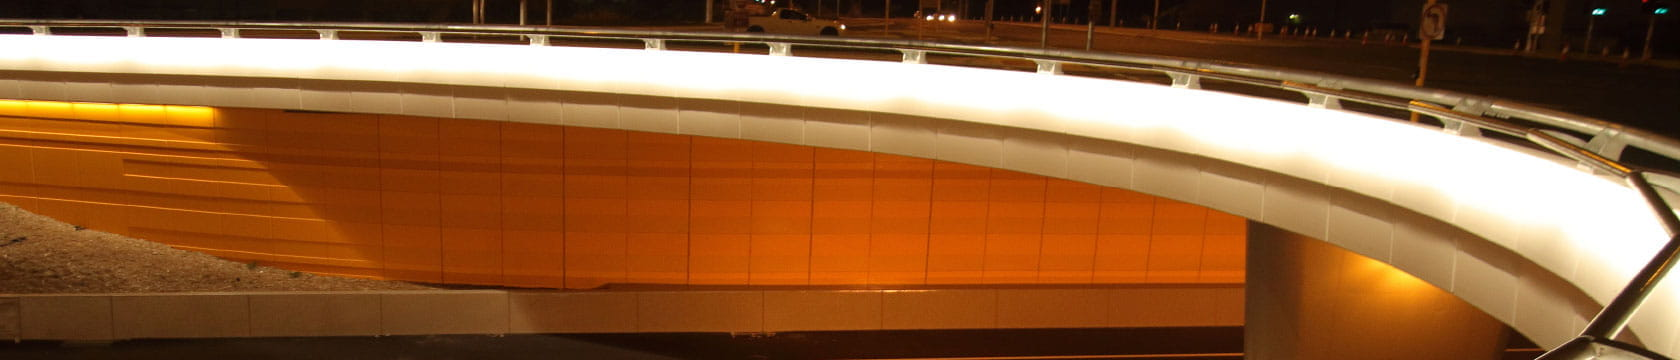 bridge over road at night time